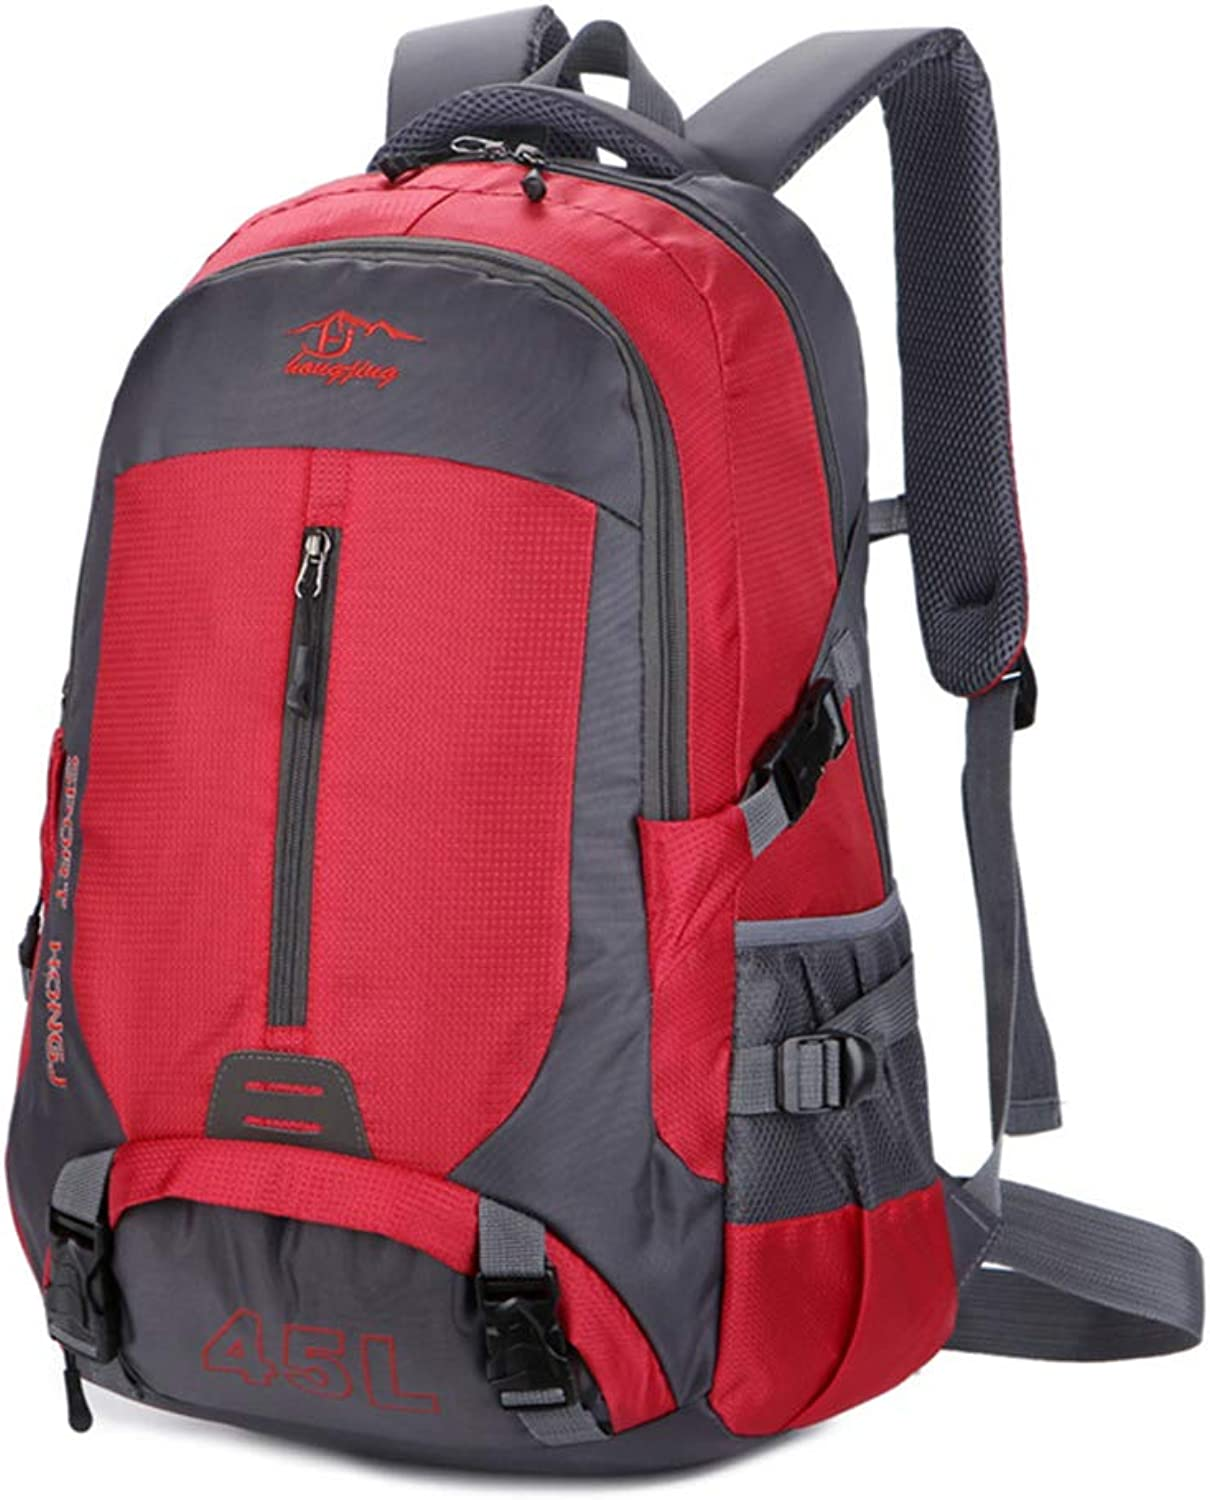 Hiking Backpack Breathable Lightweight Waterproof Portable Multifunction 45L Nylon